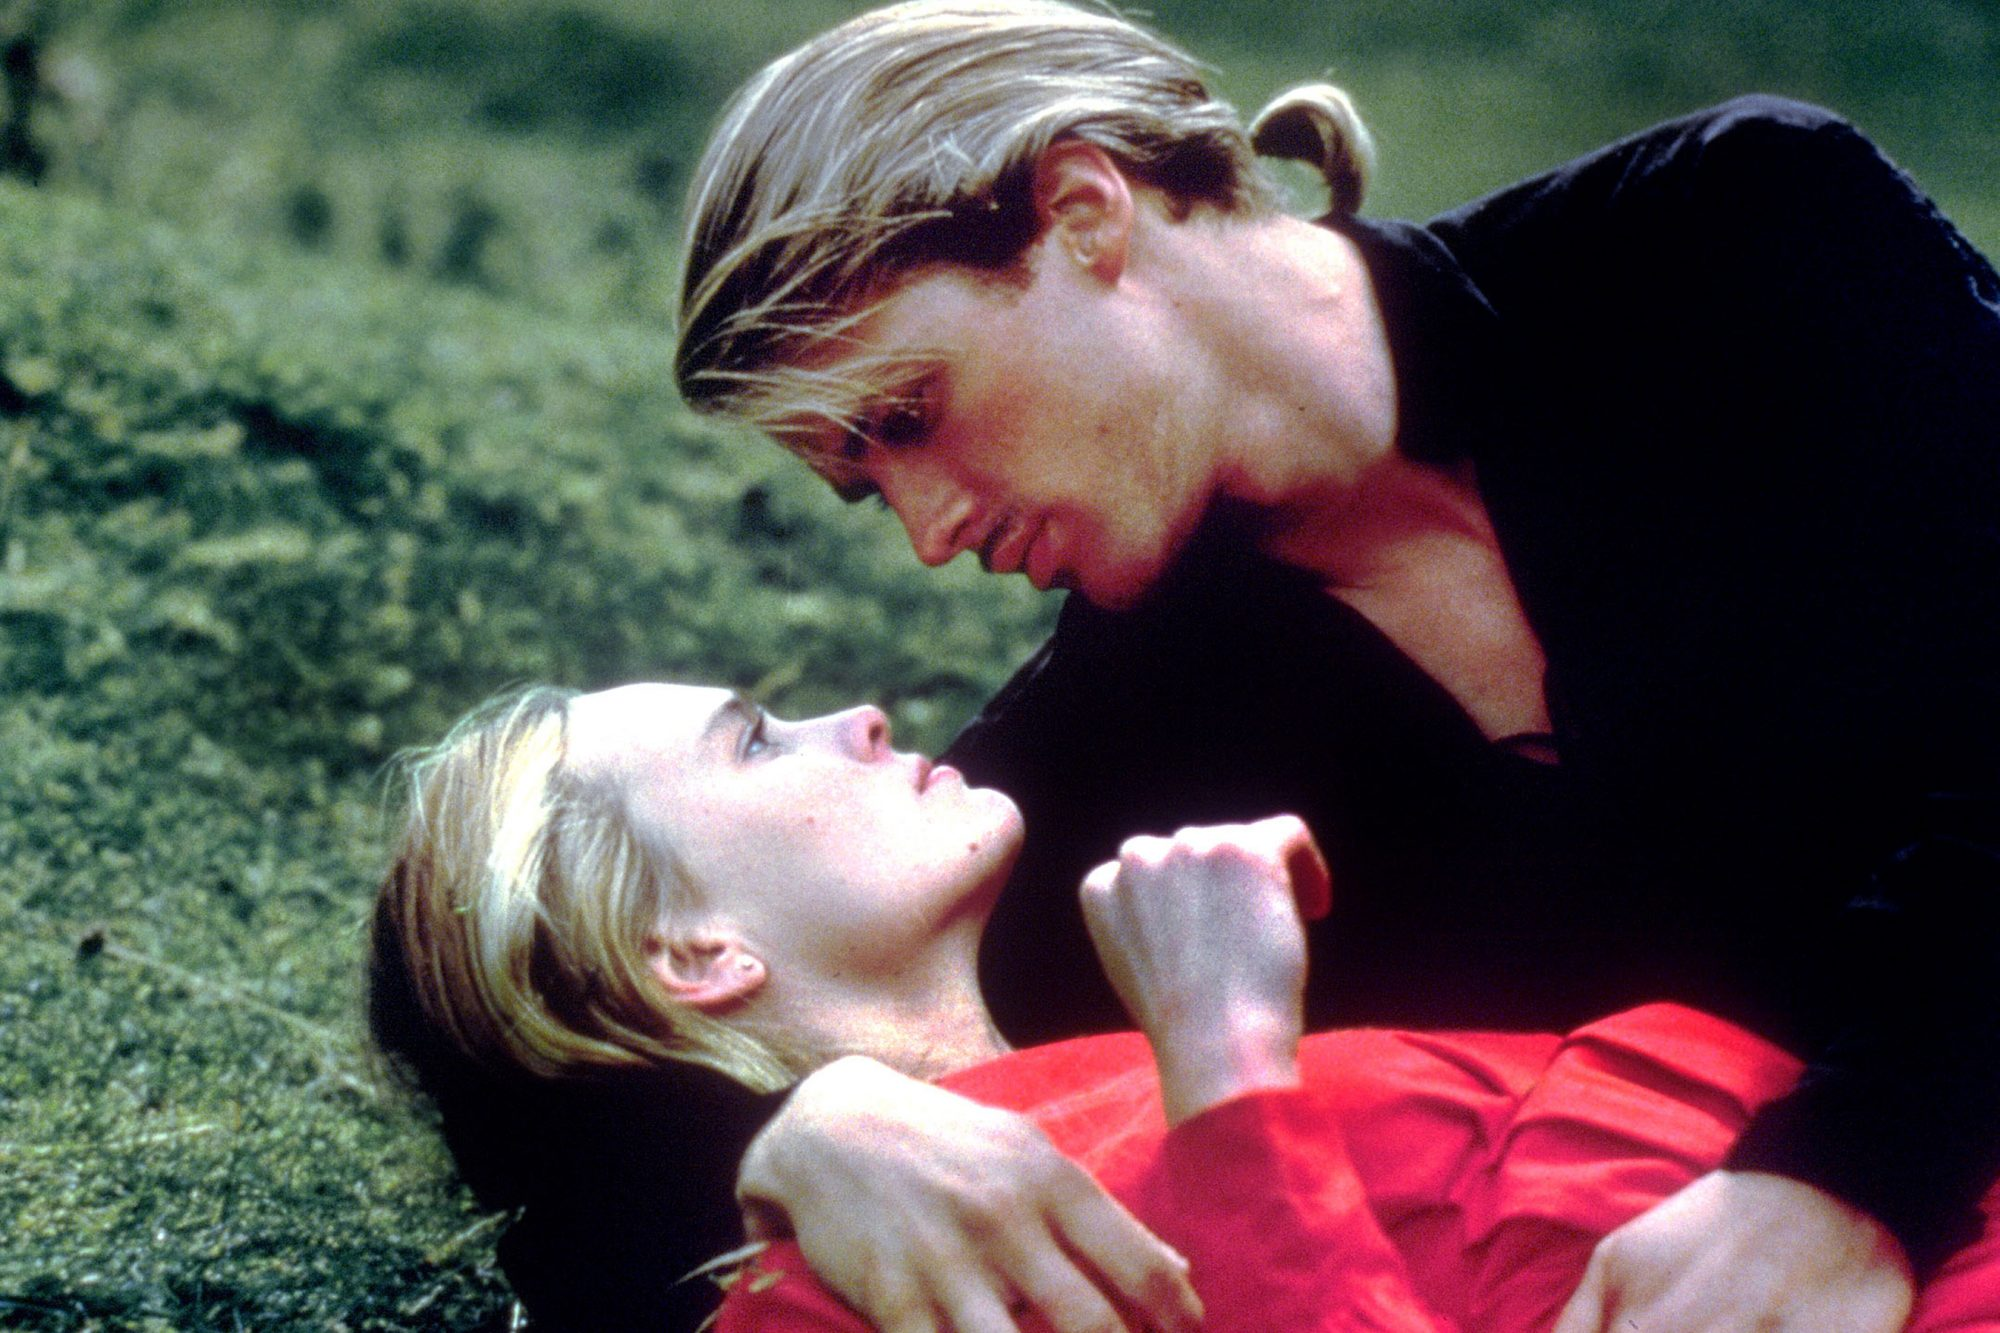 THE PRINCESS BRIDE, Robin Wright, Cary Elwes, 1987, TM & Copyright (c) 20th Century Fox Film Corp. A